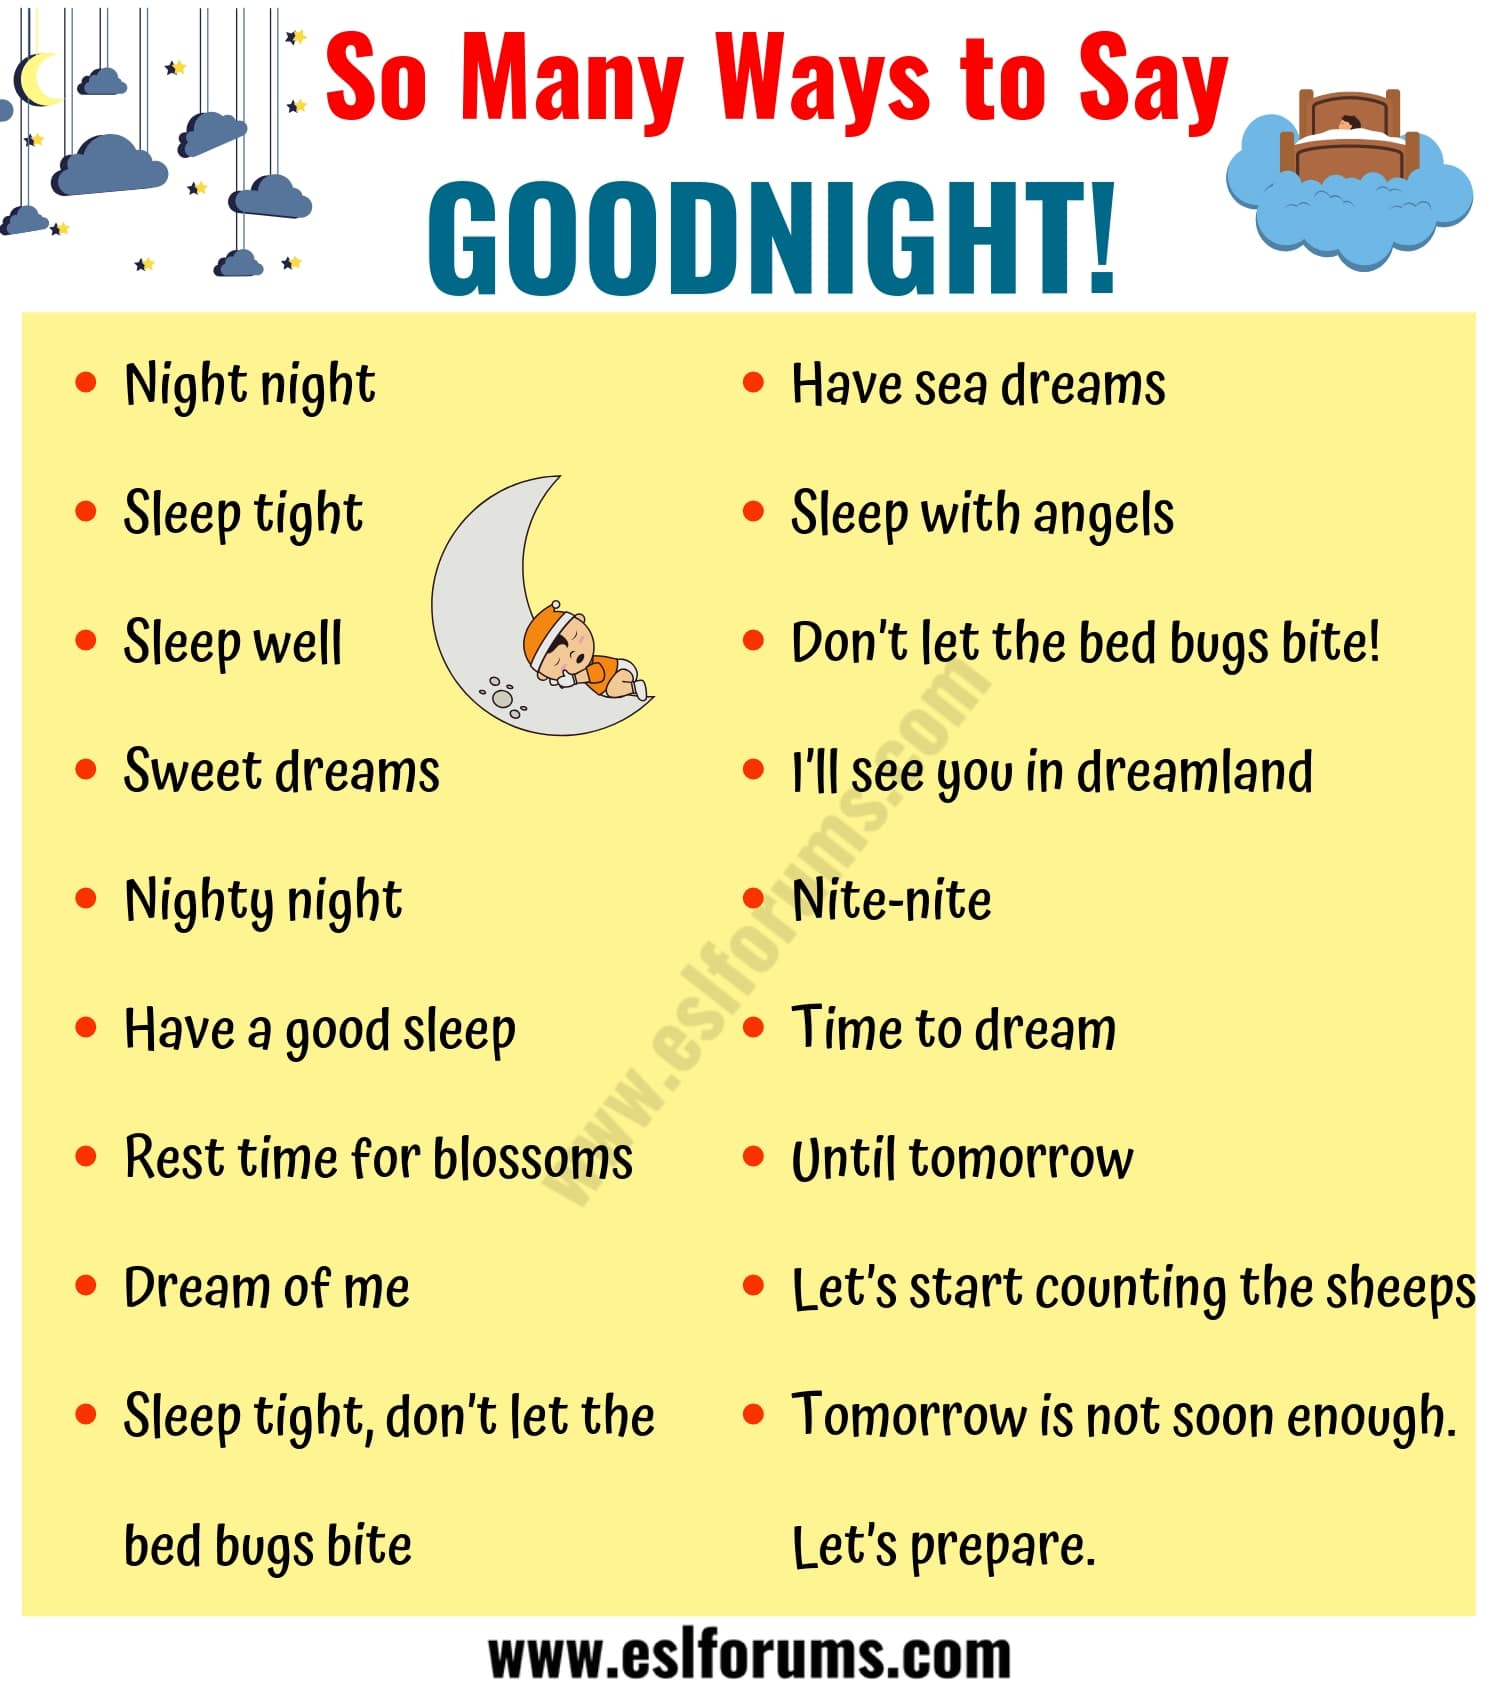 GOODNIGHT Quotes: 18 Funny Ways to Say GOODNIGHT in English